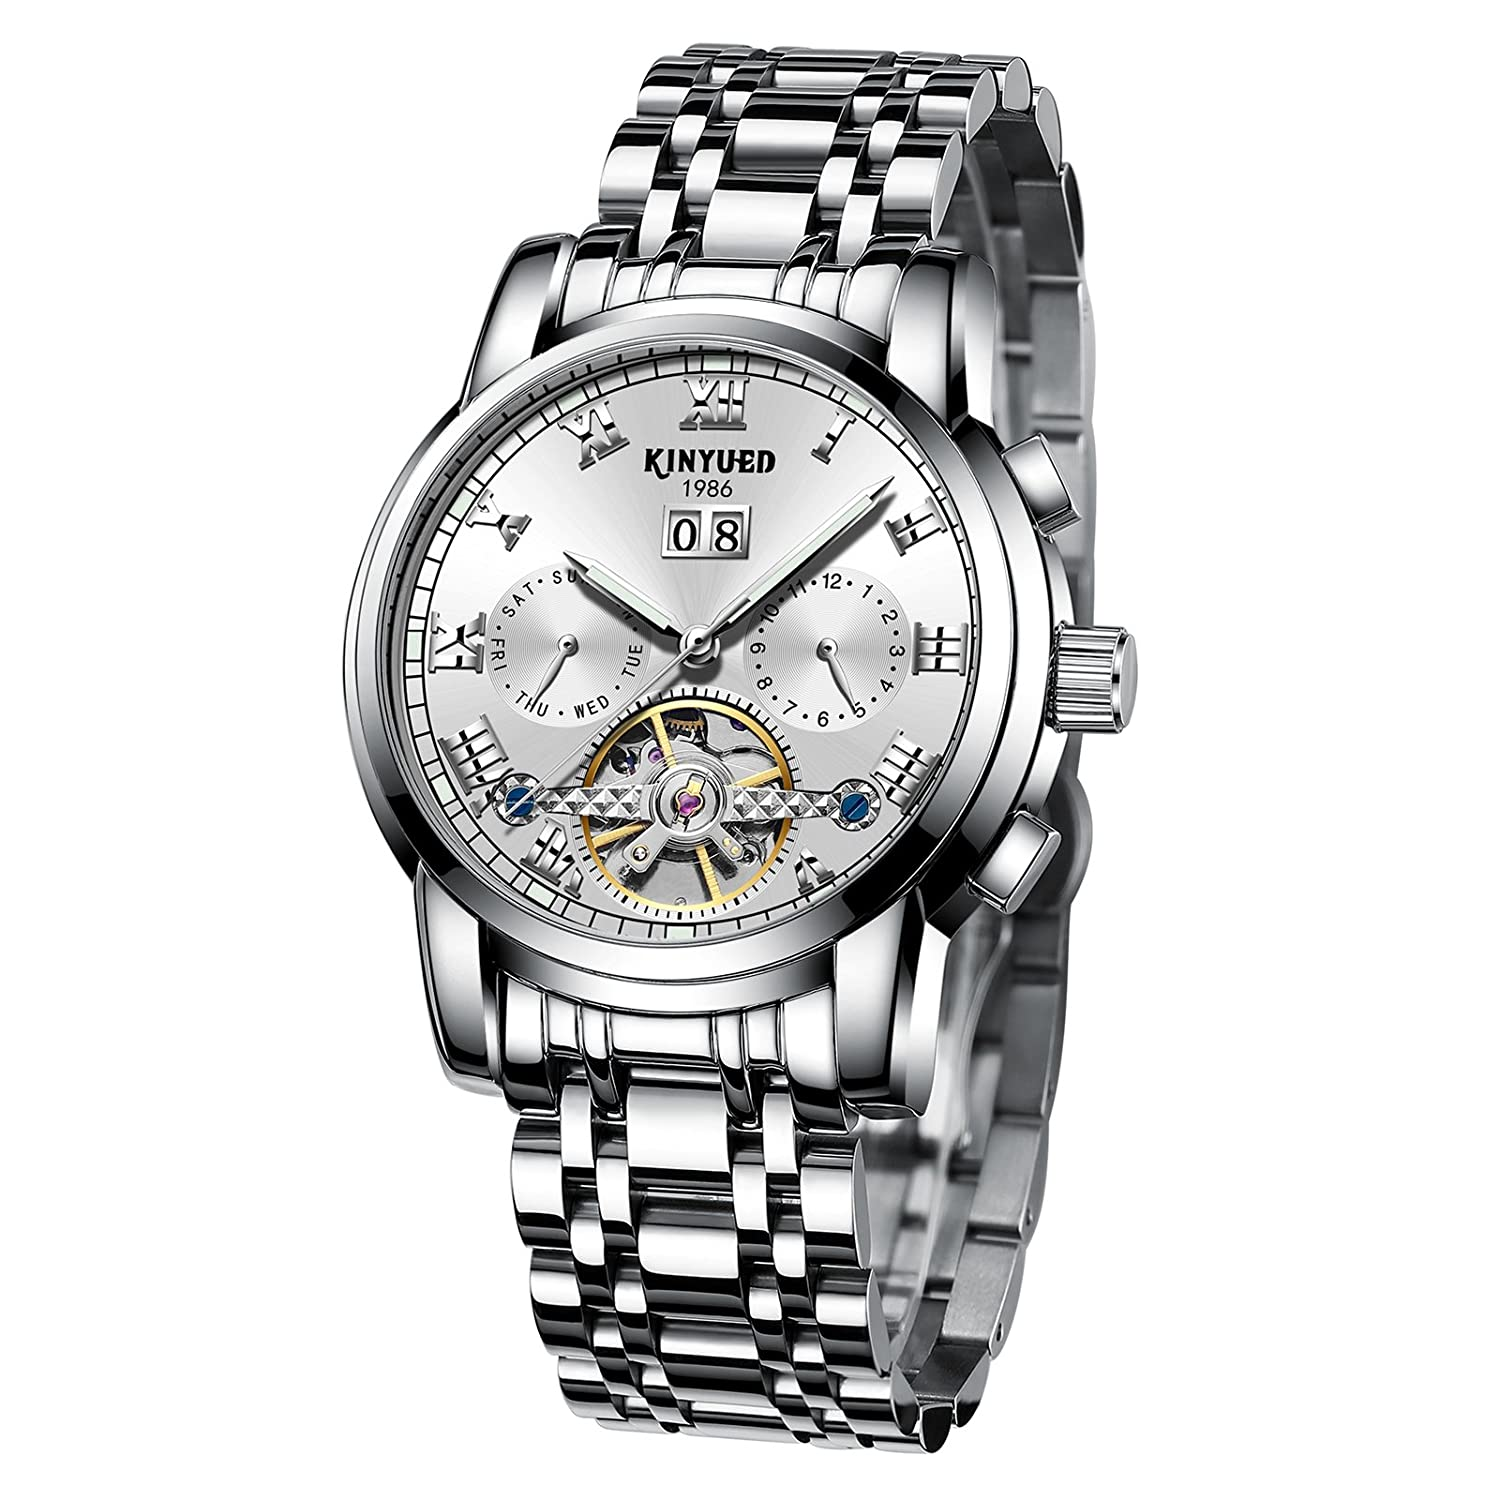 64392af5f Amazon.com: KINYUED Men's Fashion Tourbillon Automatic Movement Mechanical  Wrist Watches Classic Day Date Calendar Silver Stainless Steel Band with  White ...